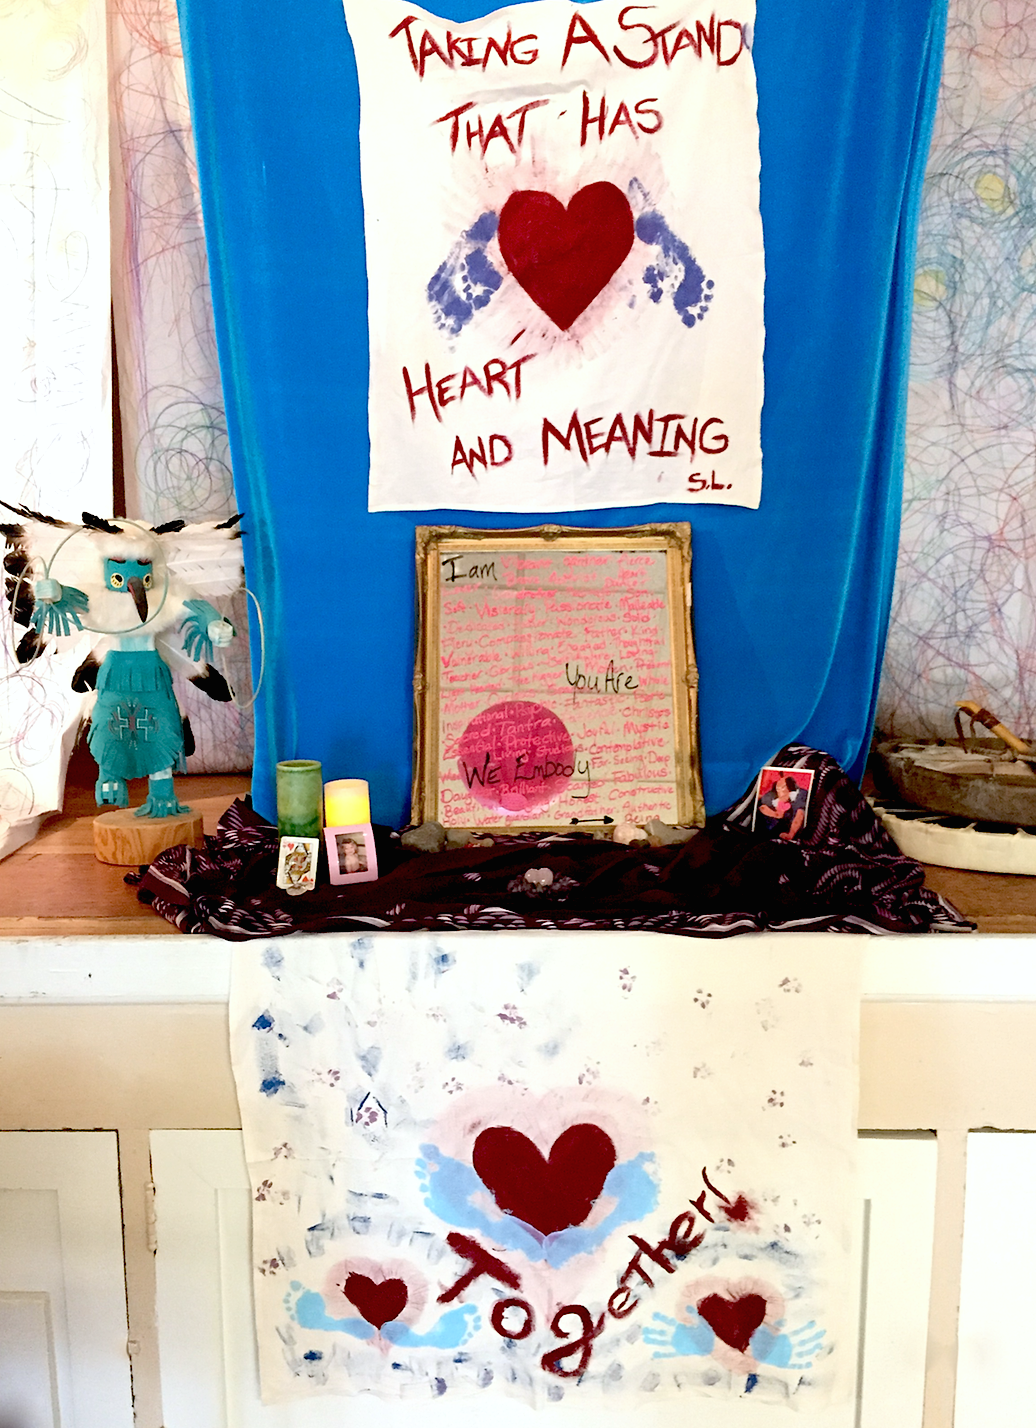 Art installation created by Jennifer Hope and her daughter, Raven, to inspire our exploration of the Heart Warrior/Warrioress archetype.